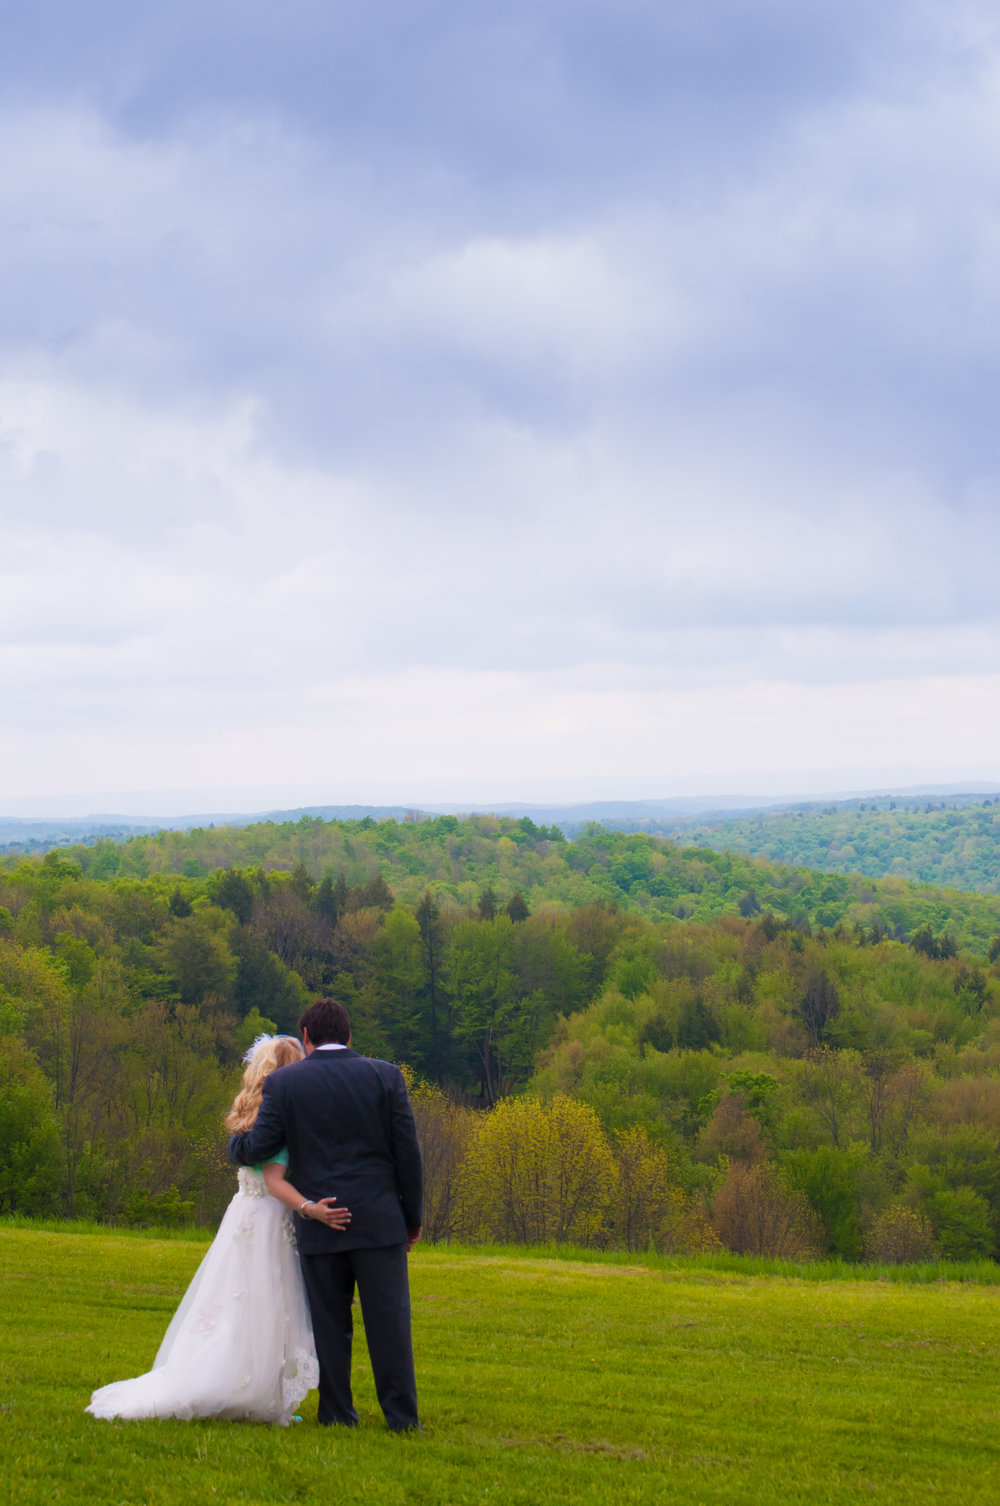 CarrieWestonStudios_Northport_Engagement_Wedding_Portraits_NY_Photography_Photographer-2356.jpg